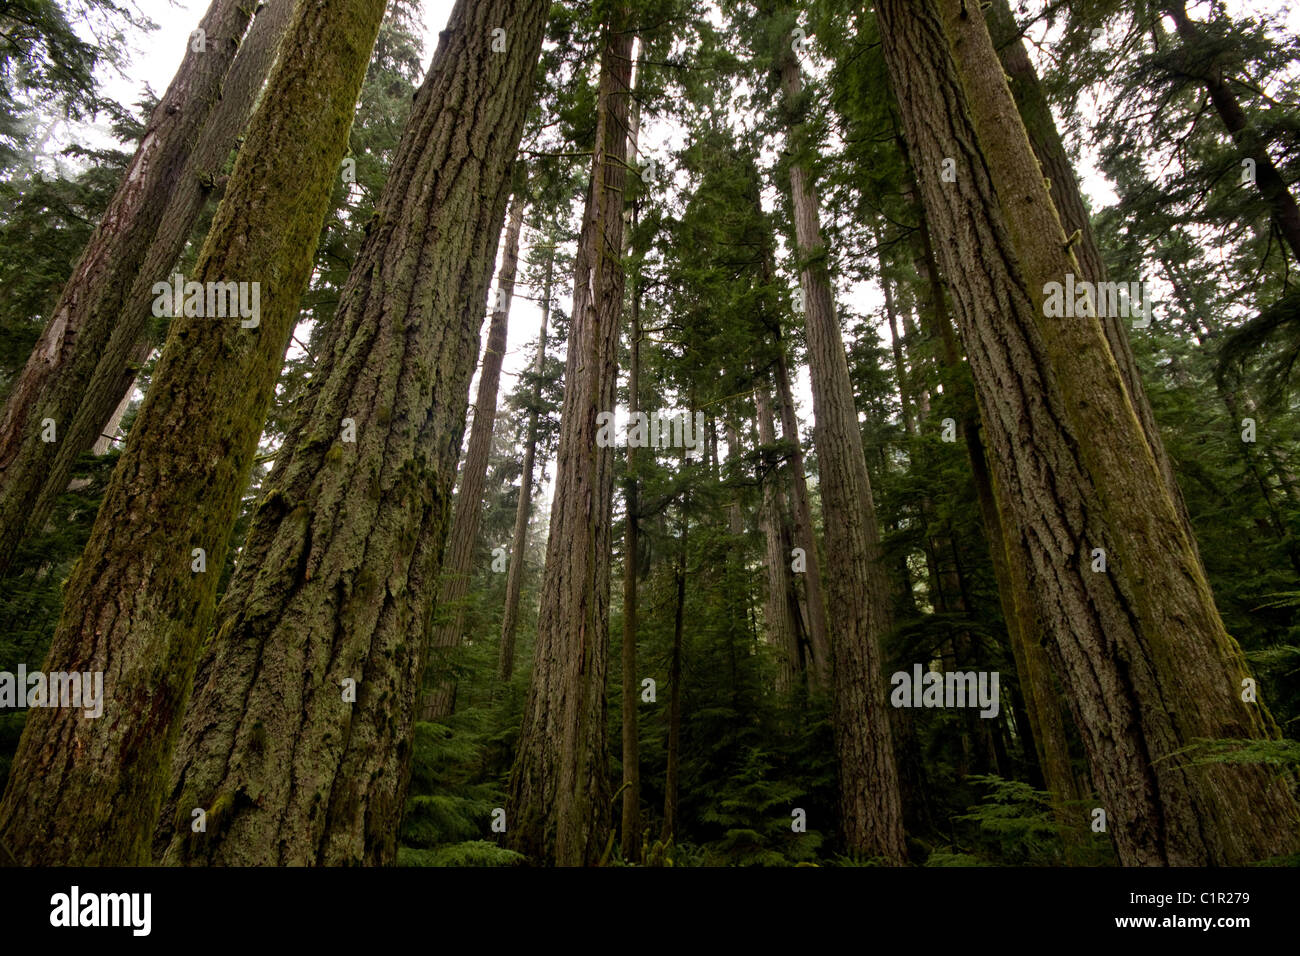 Old growth trees reaching for the sky, Cathedral Grove, Vancouver Island, British Columbia - Stock Image